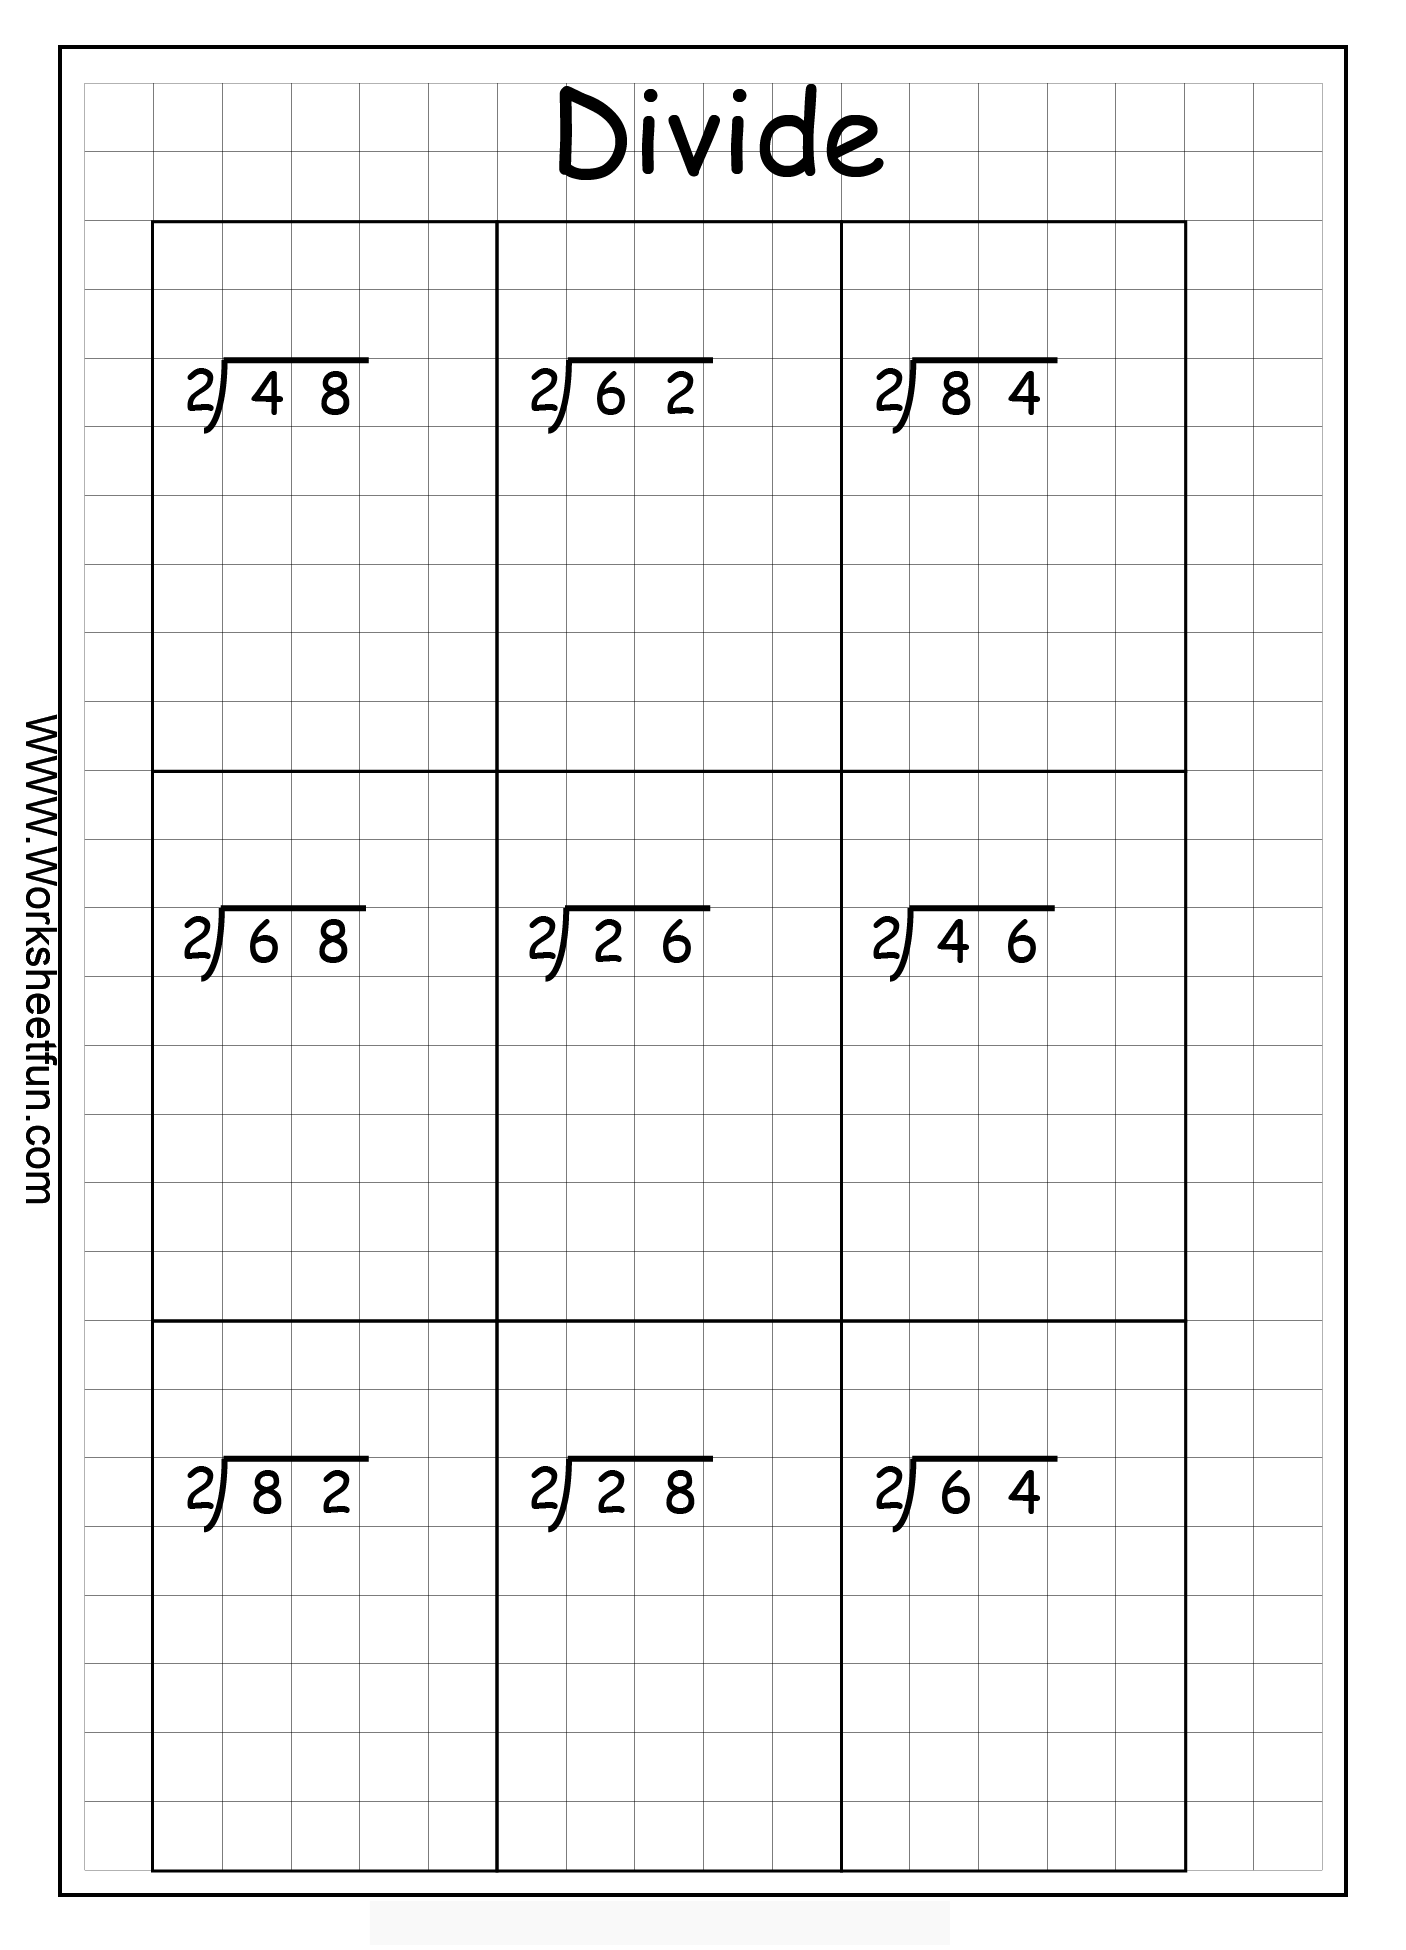 Long Division 2 Digits By 1 Digit Without Remainders